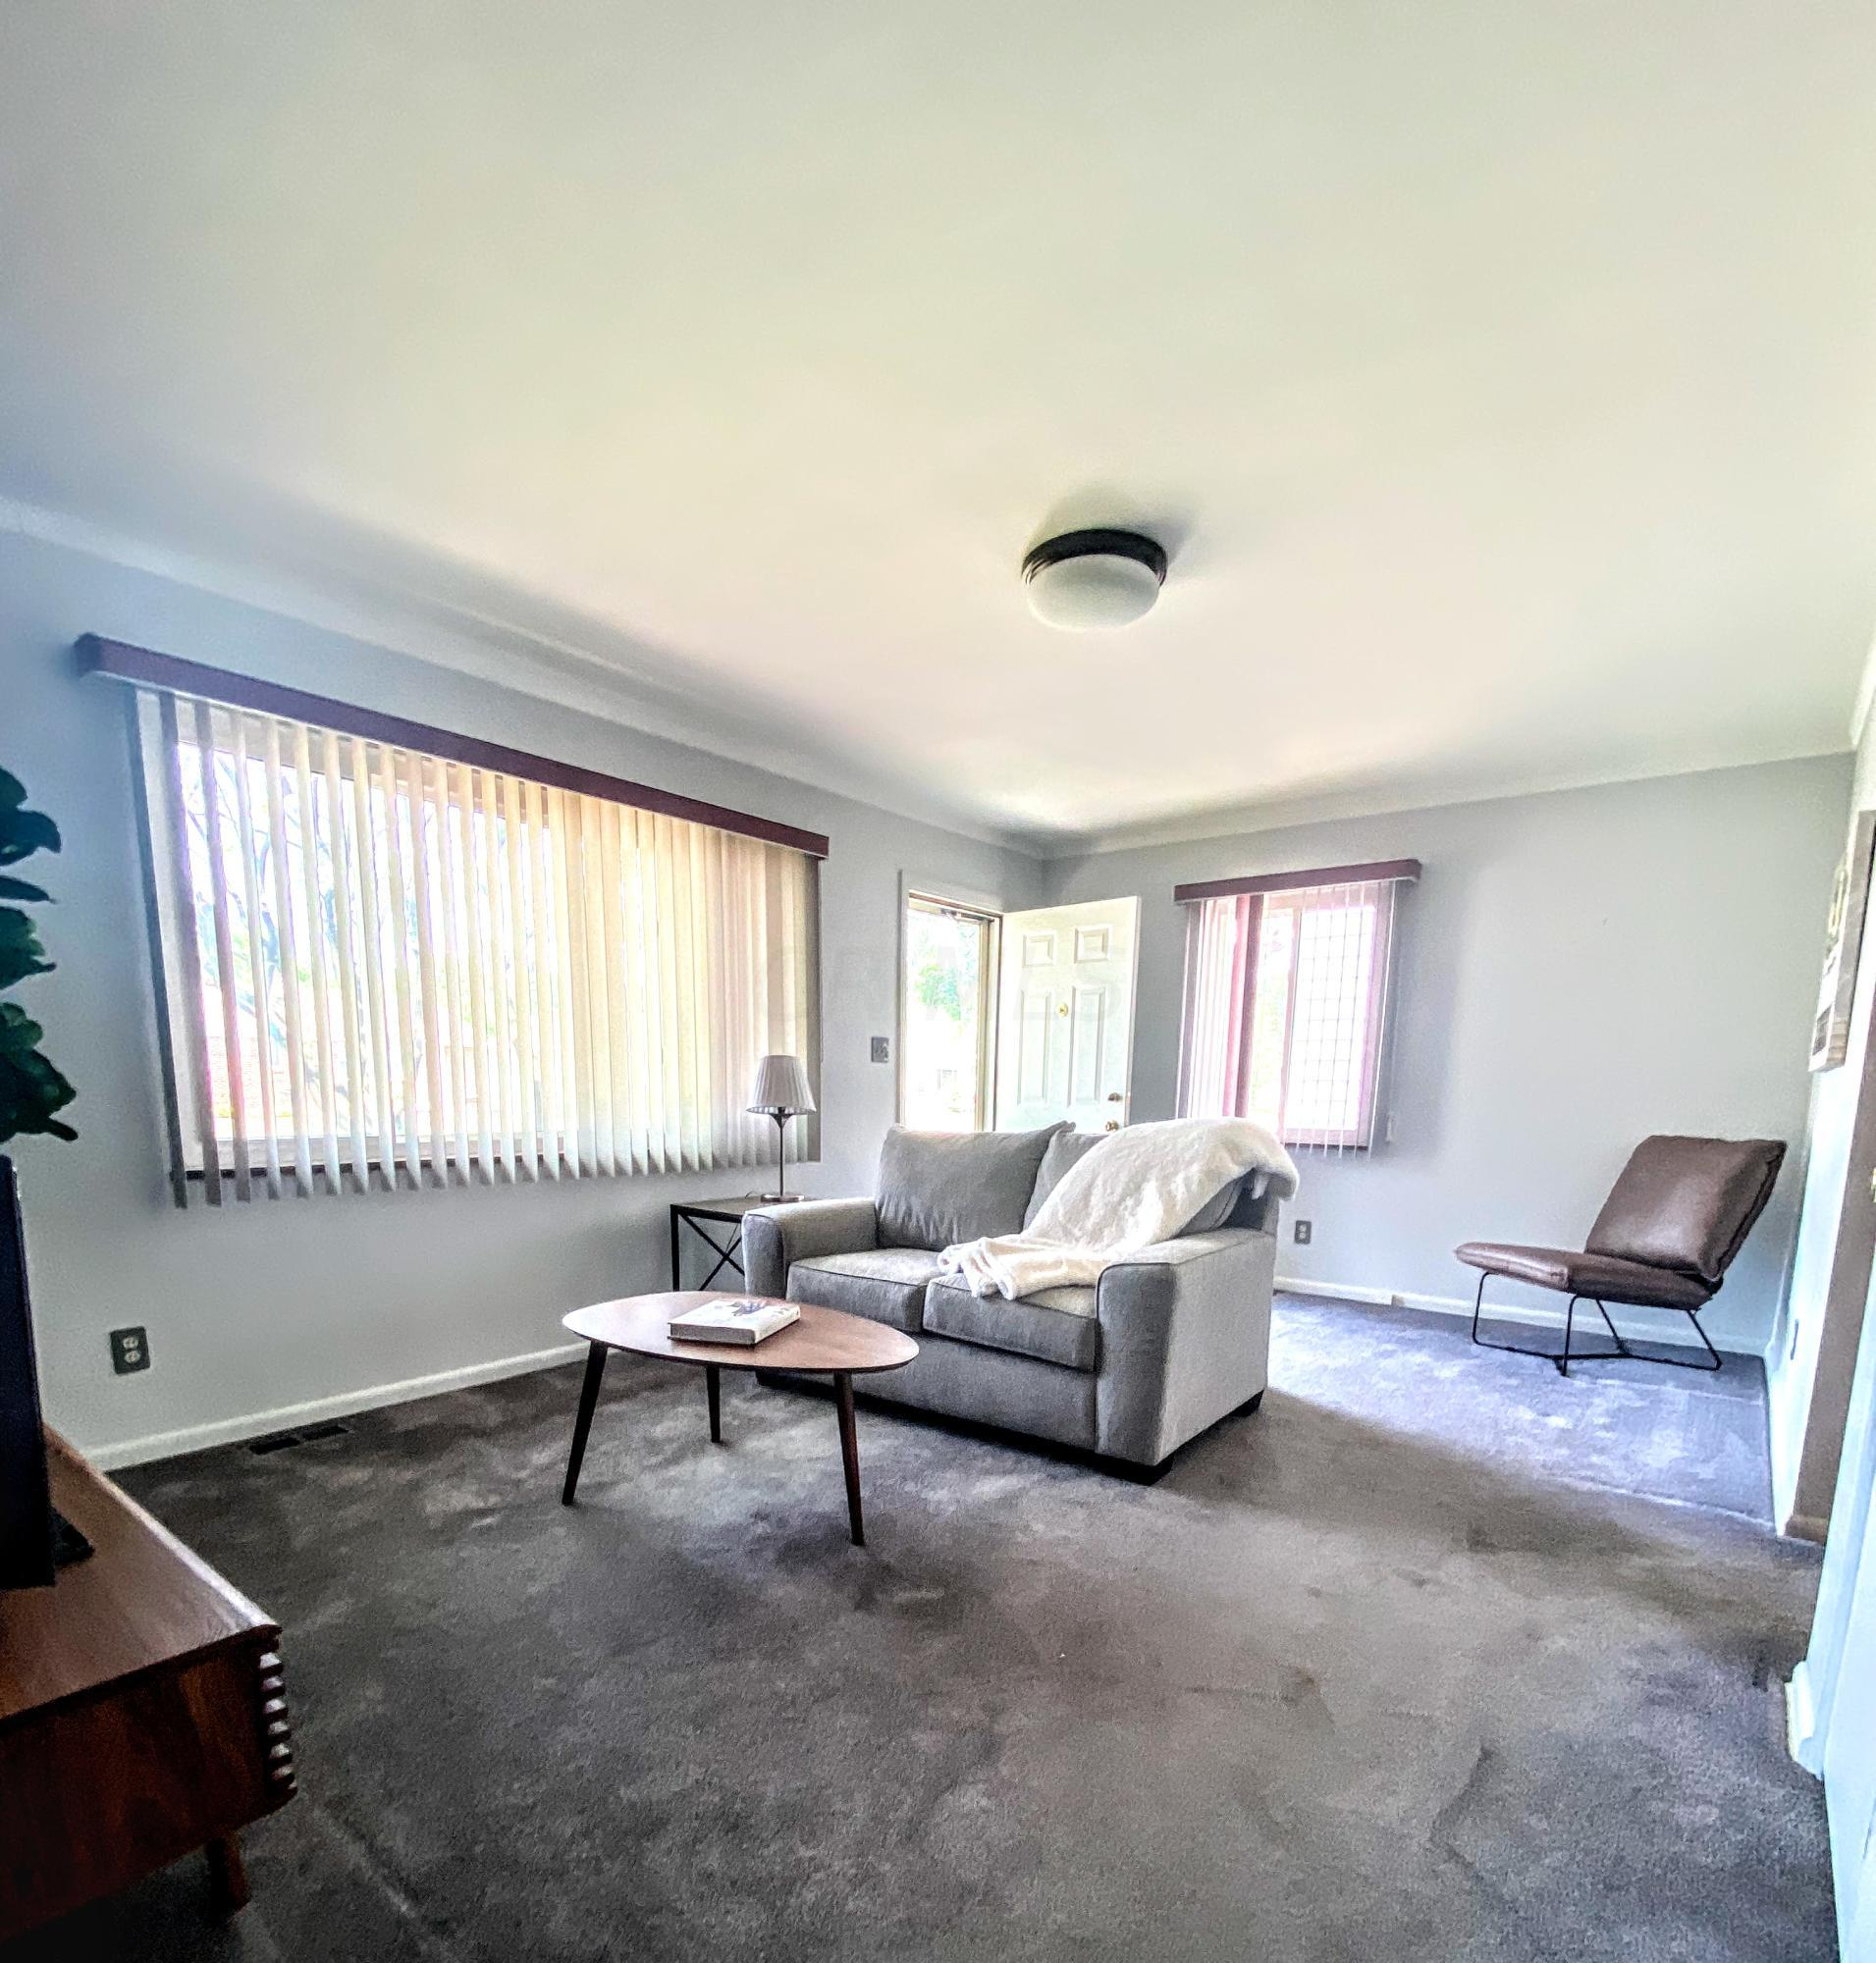 Bright family room with large window